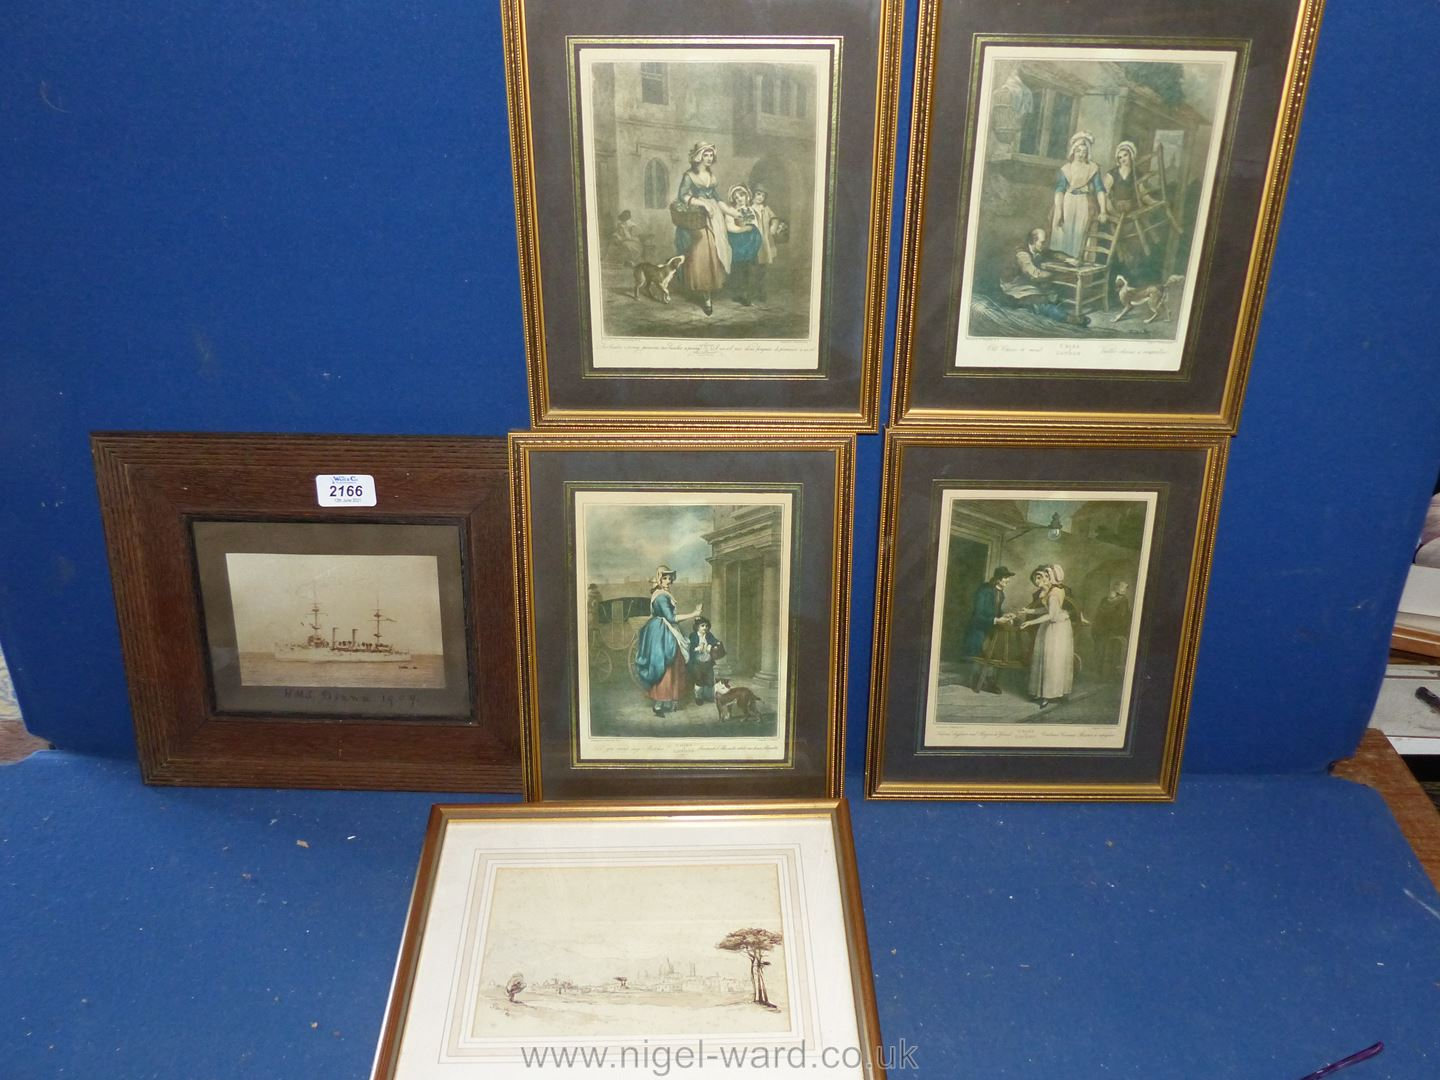 """An Old Naval photo, framed, Ink Drawing 1865 and four """"Cries of London"""" prints. - Image 2 of 3"""